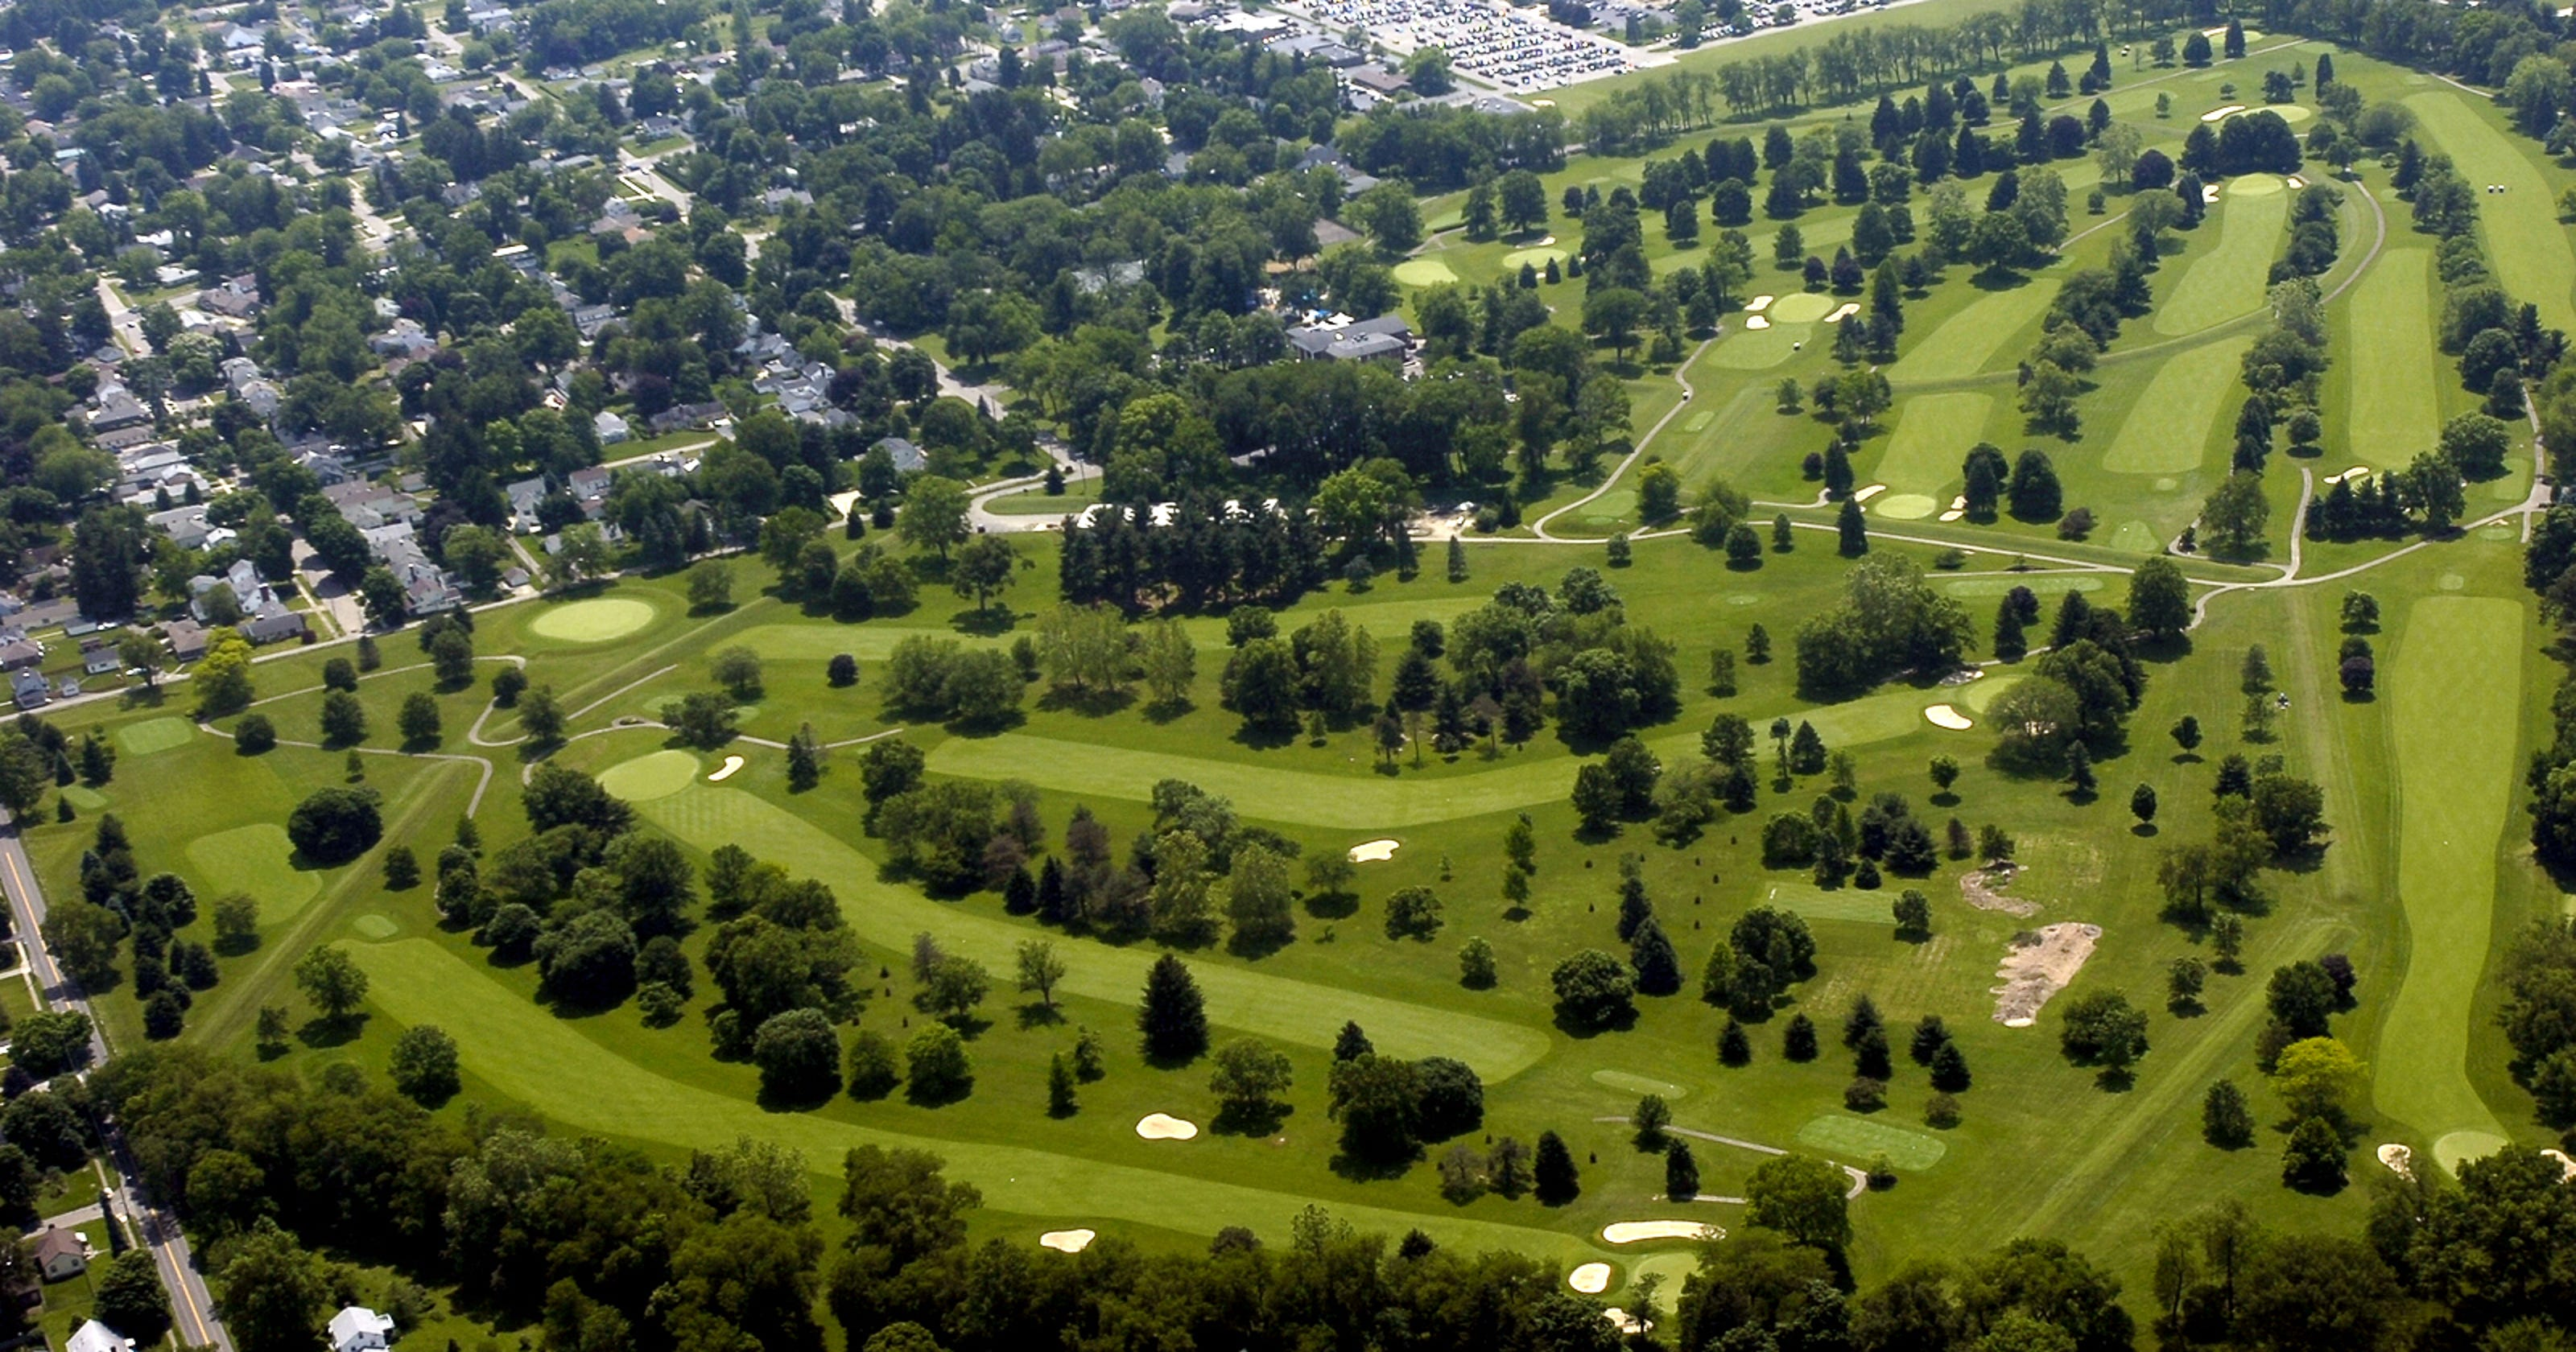 Moundbuilders Country Club could become Octagon Earthworks park